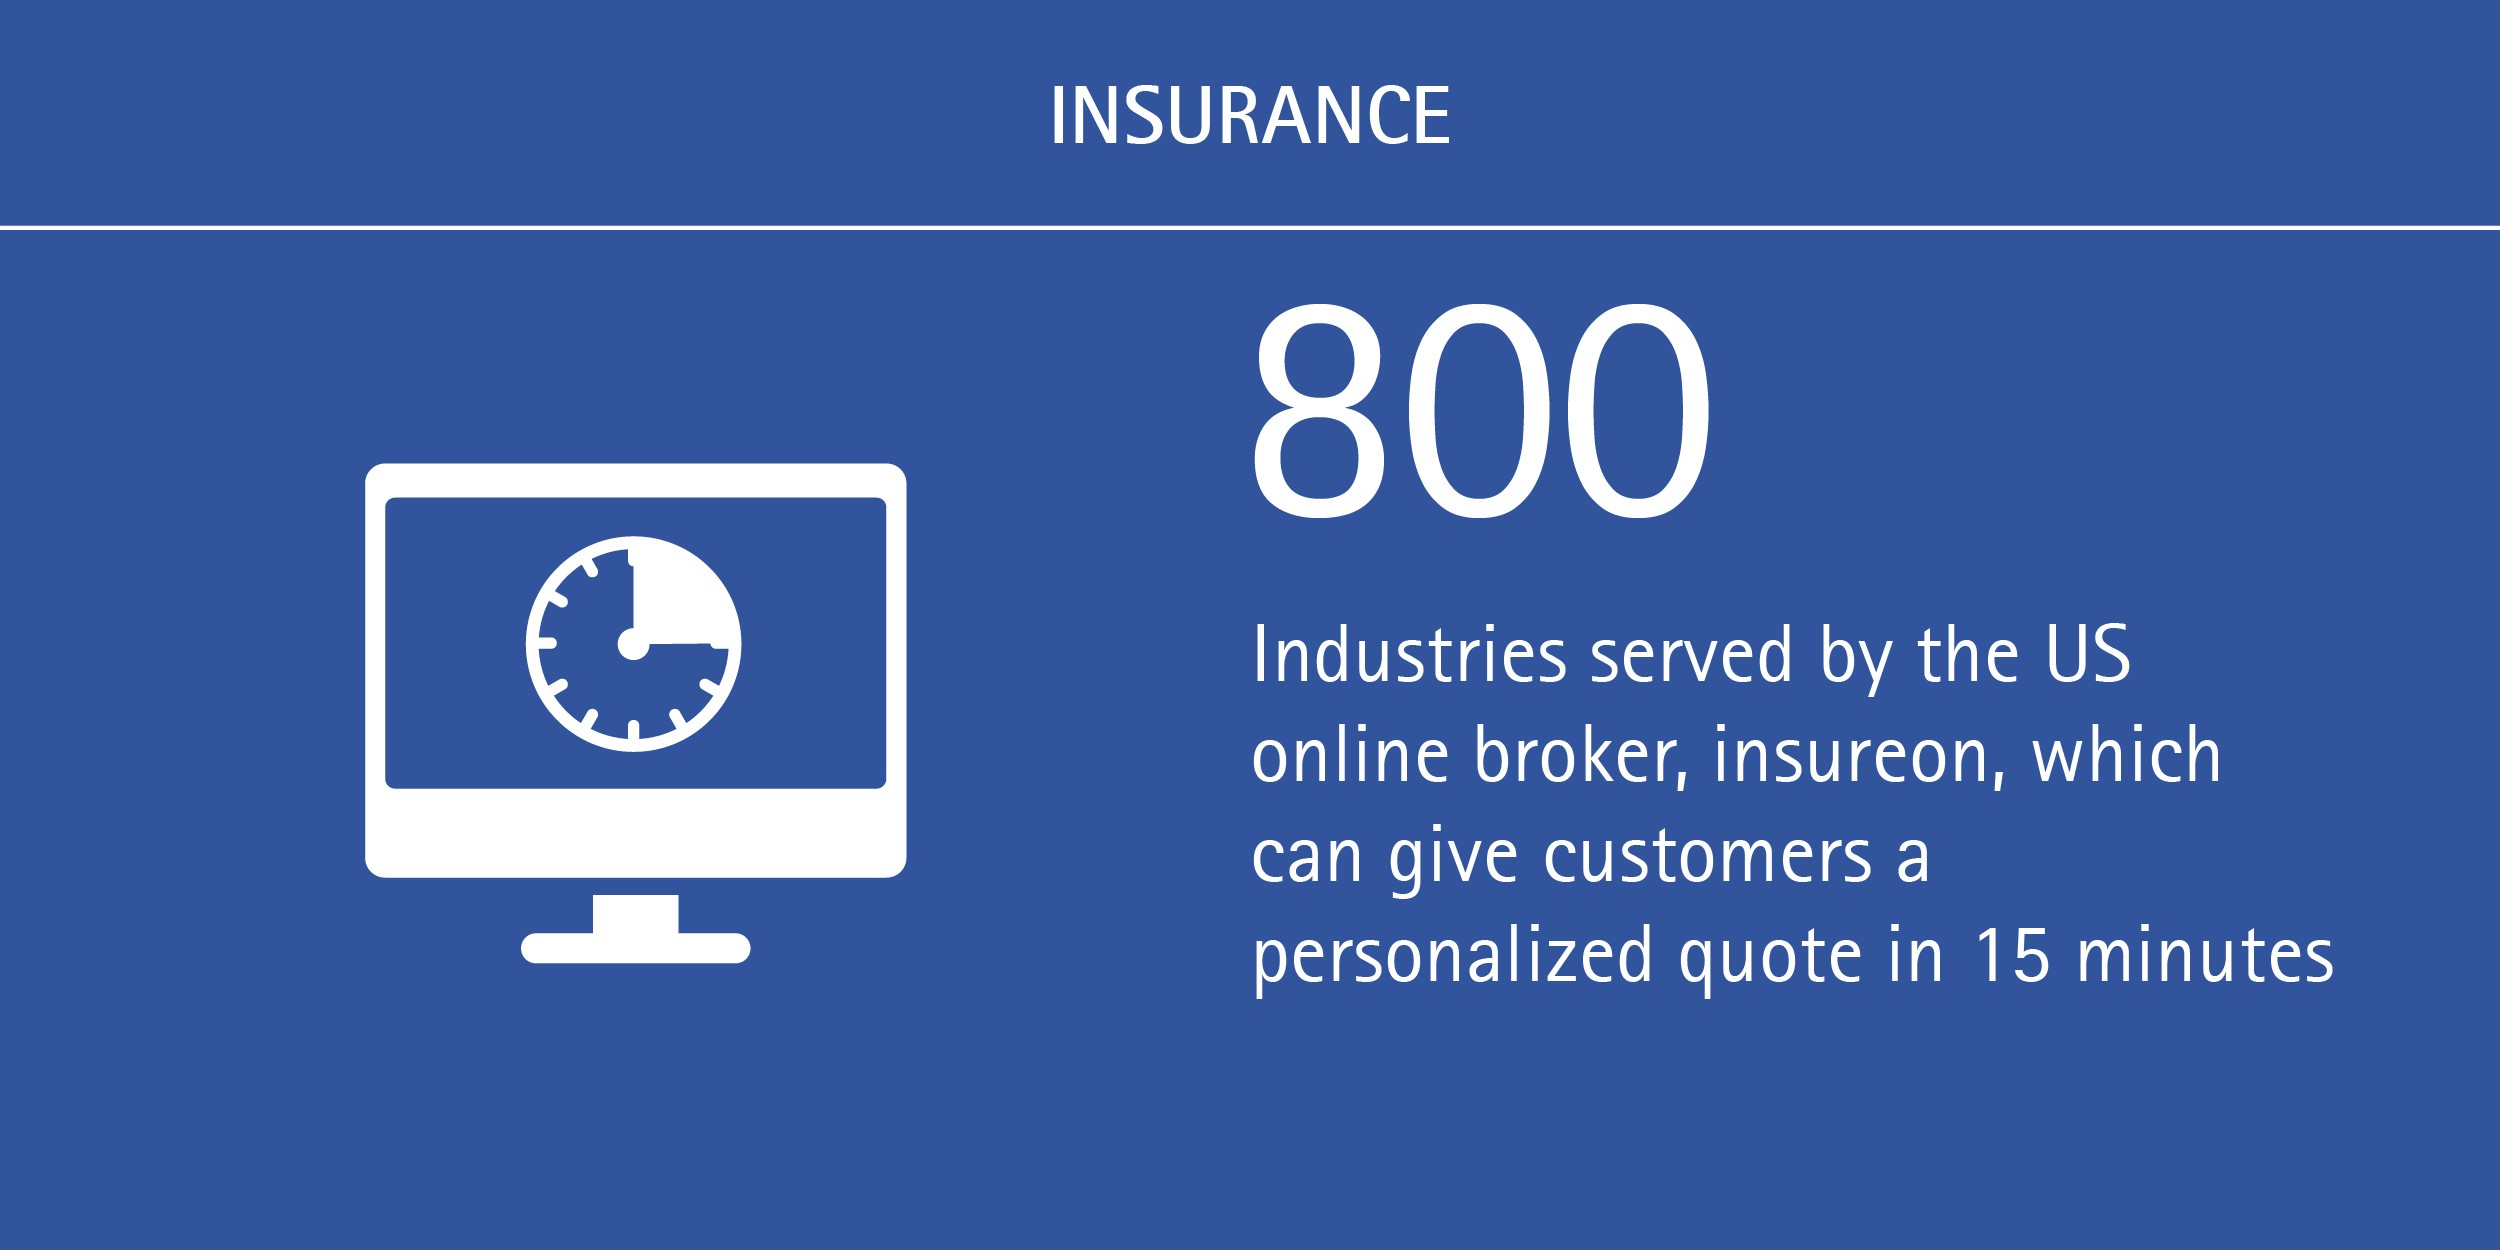 Customer-centricity is a must in the new insurance distribution ecosystem